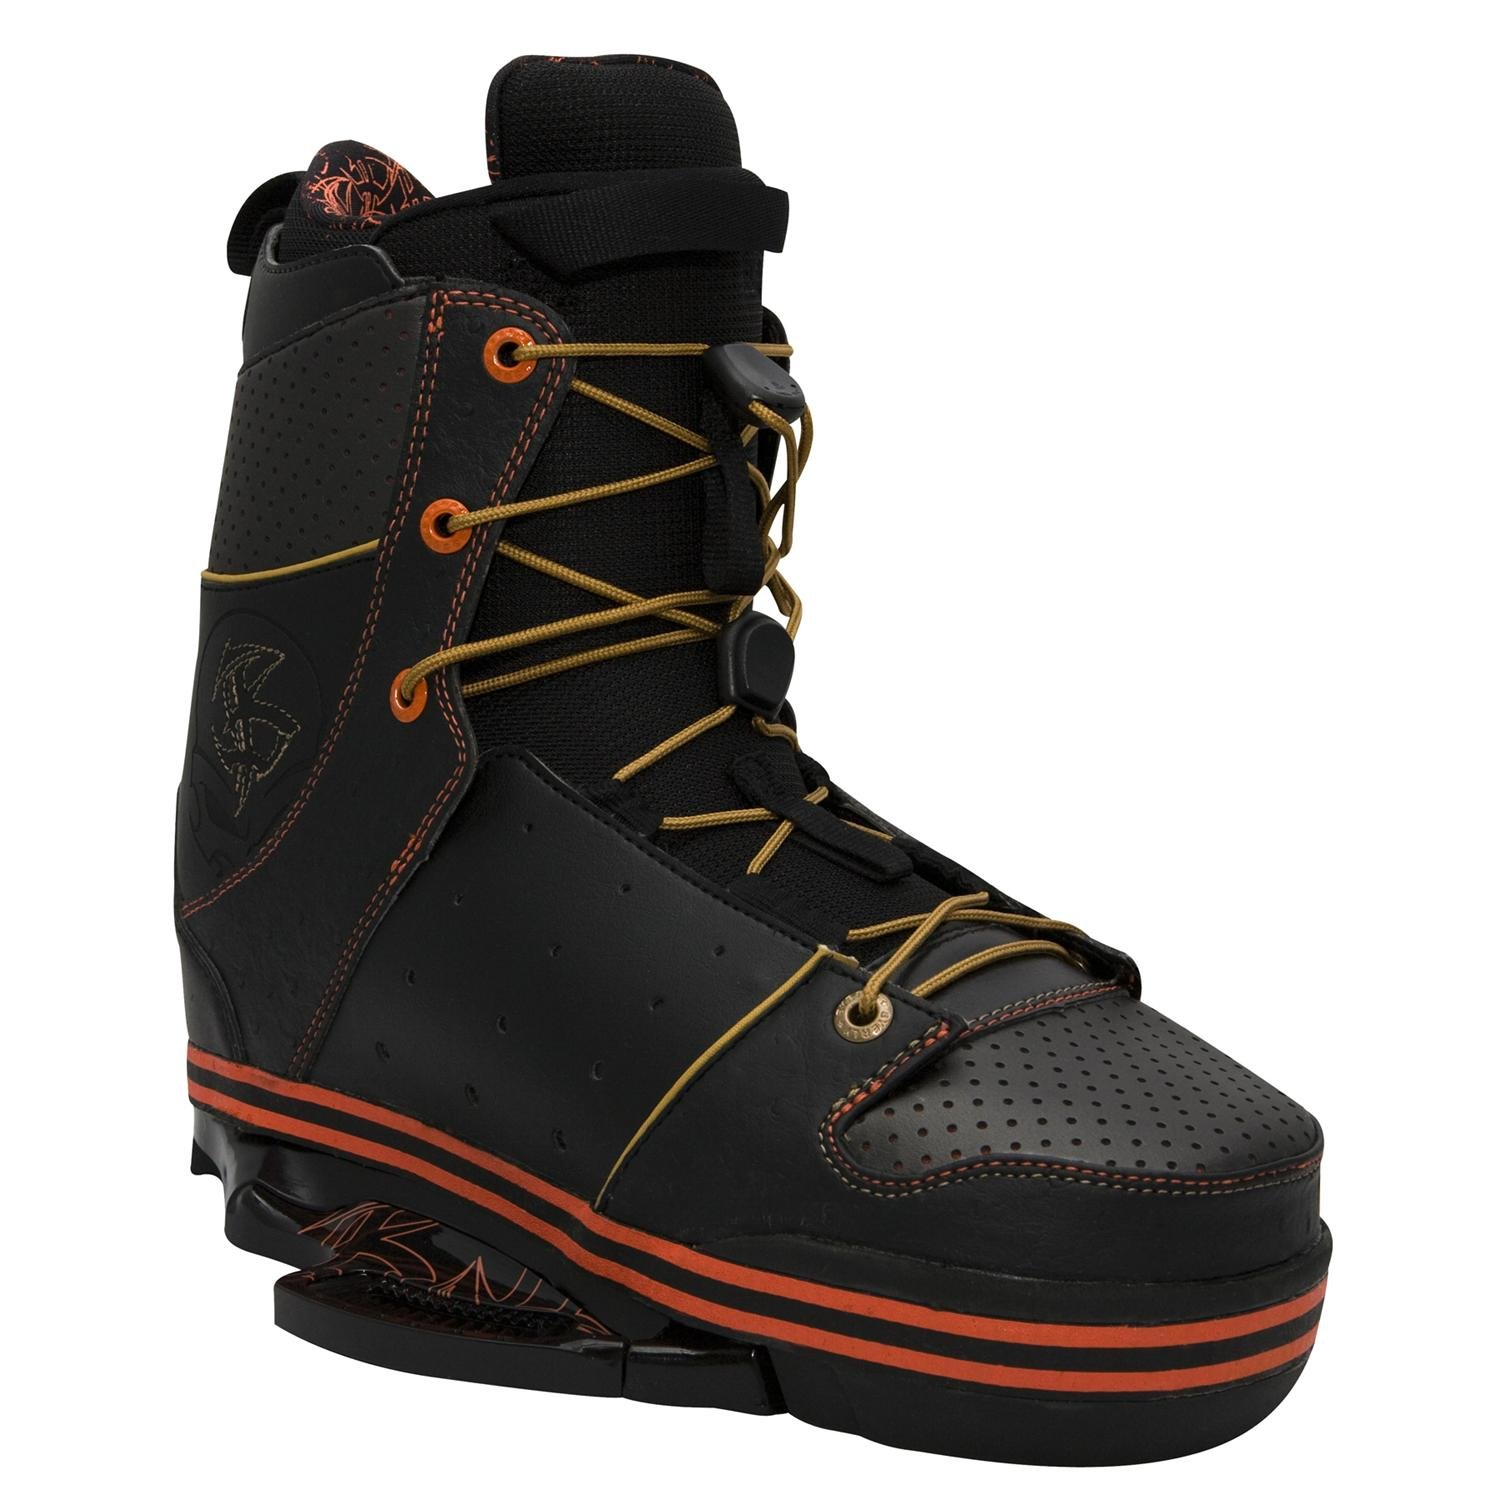 BYERLY PRO BOOT